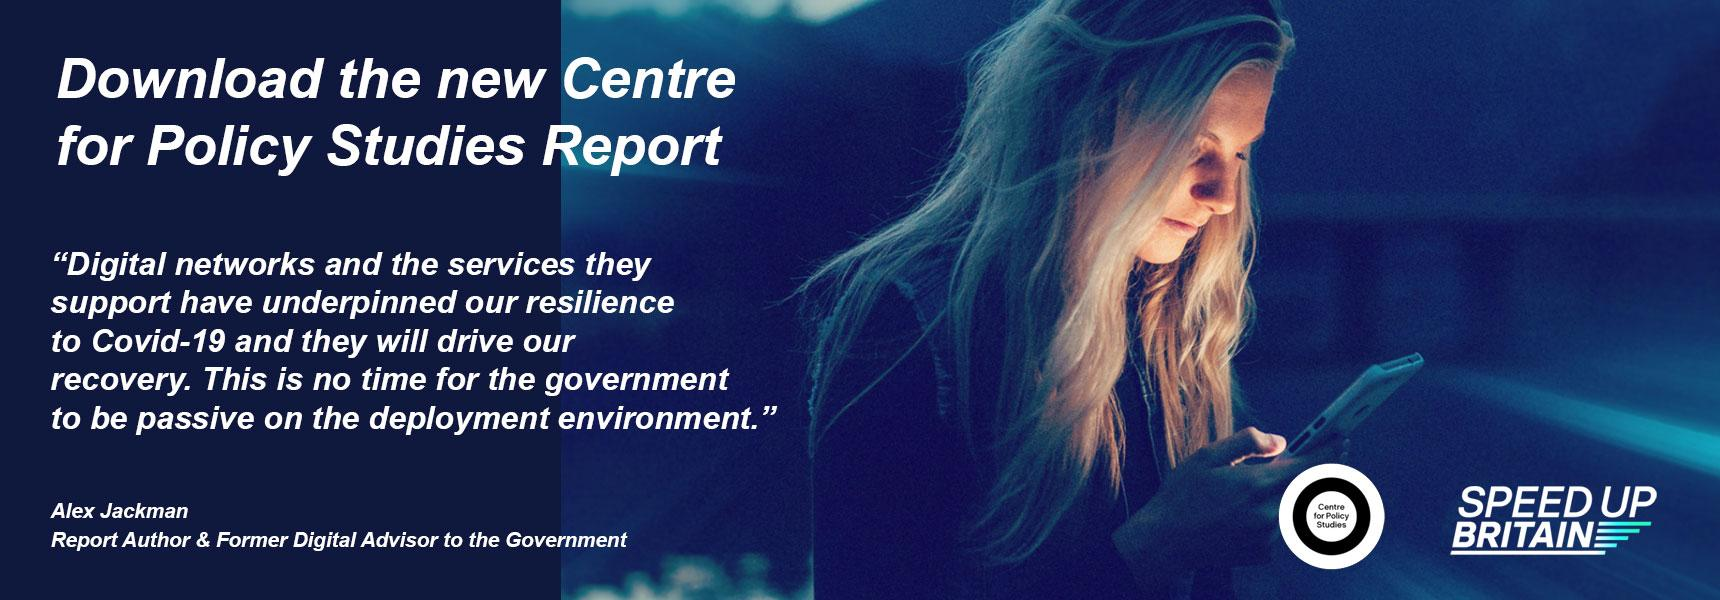 The Centre of Policy Studies launches new report